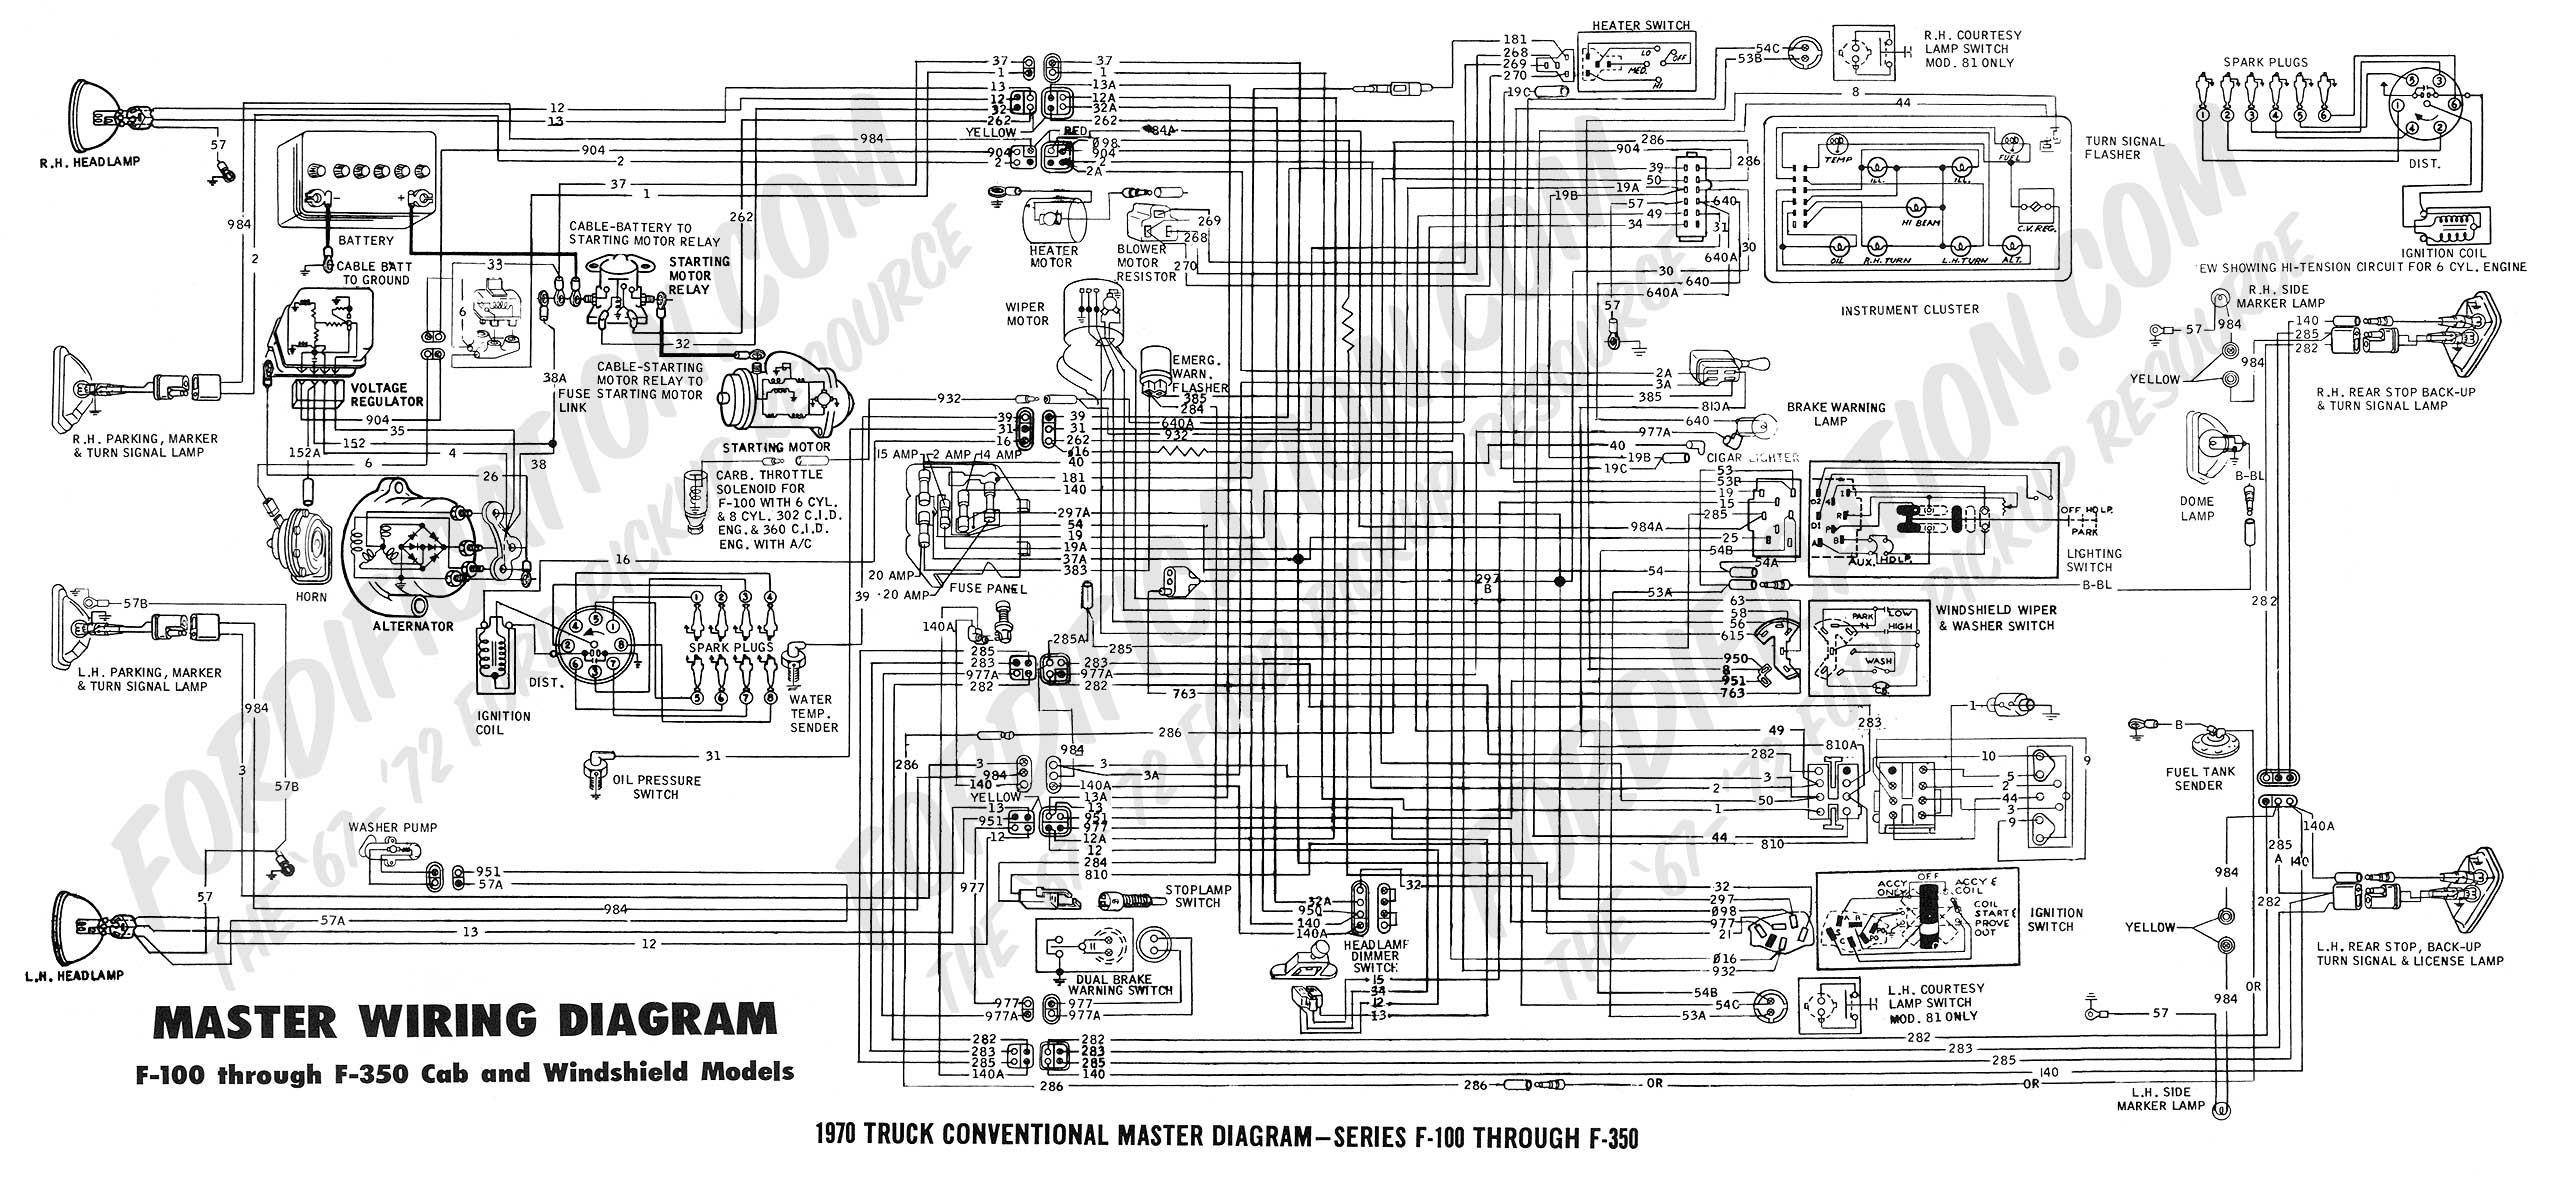 1978 chevrolet wiring diagram truck wiring diagrams truck wiring diagrams online